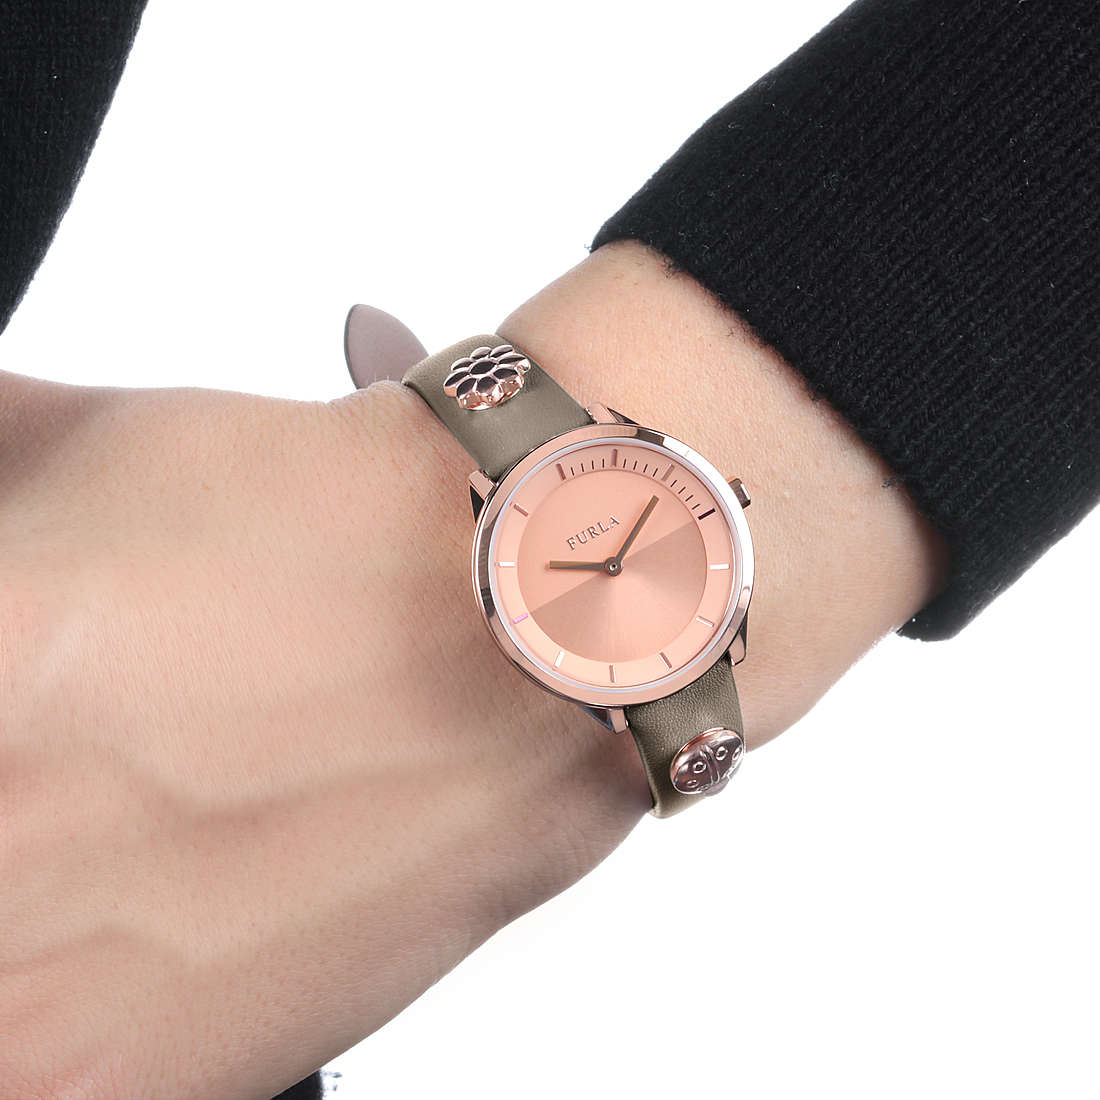 98be466263 Furla Pin Leather Women's Watch - R4251112506 – The Watch Factory ...